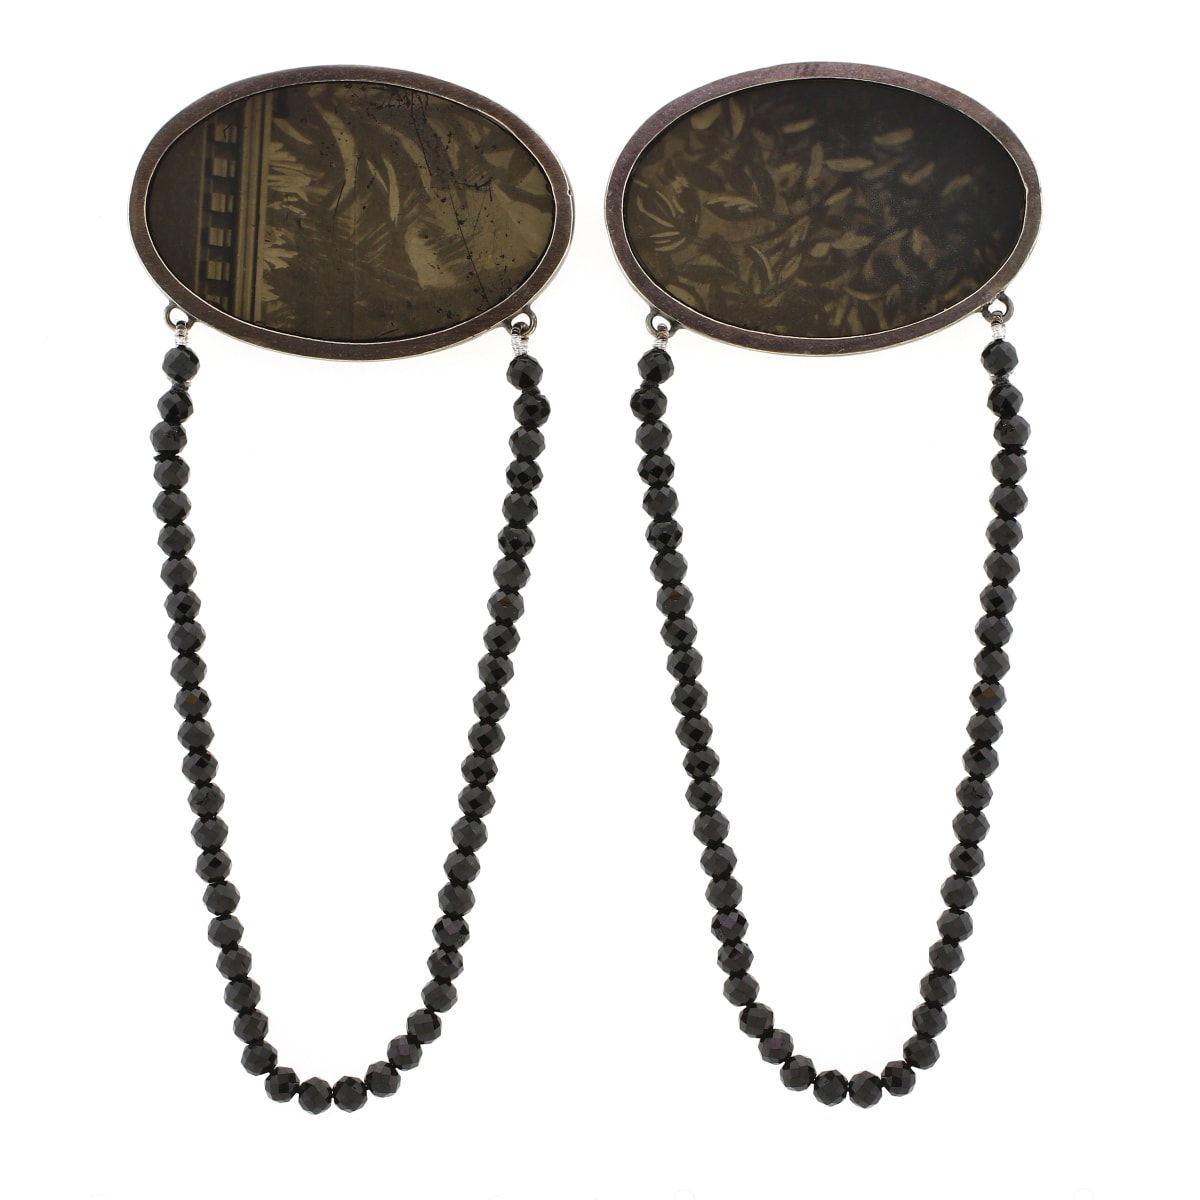 Megan McGaffigan, Wallpaper Study I